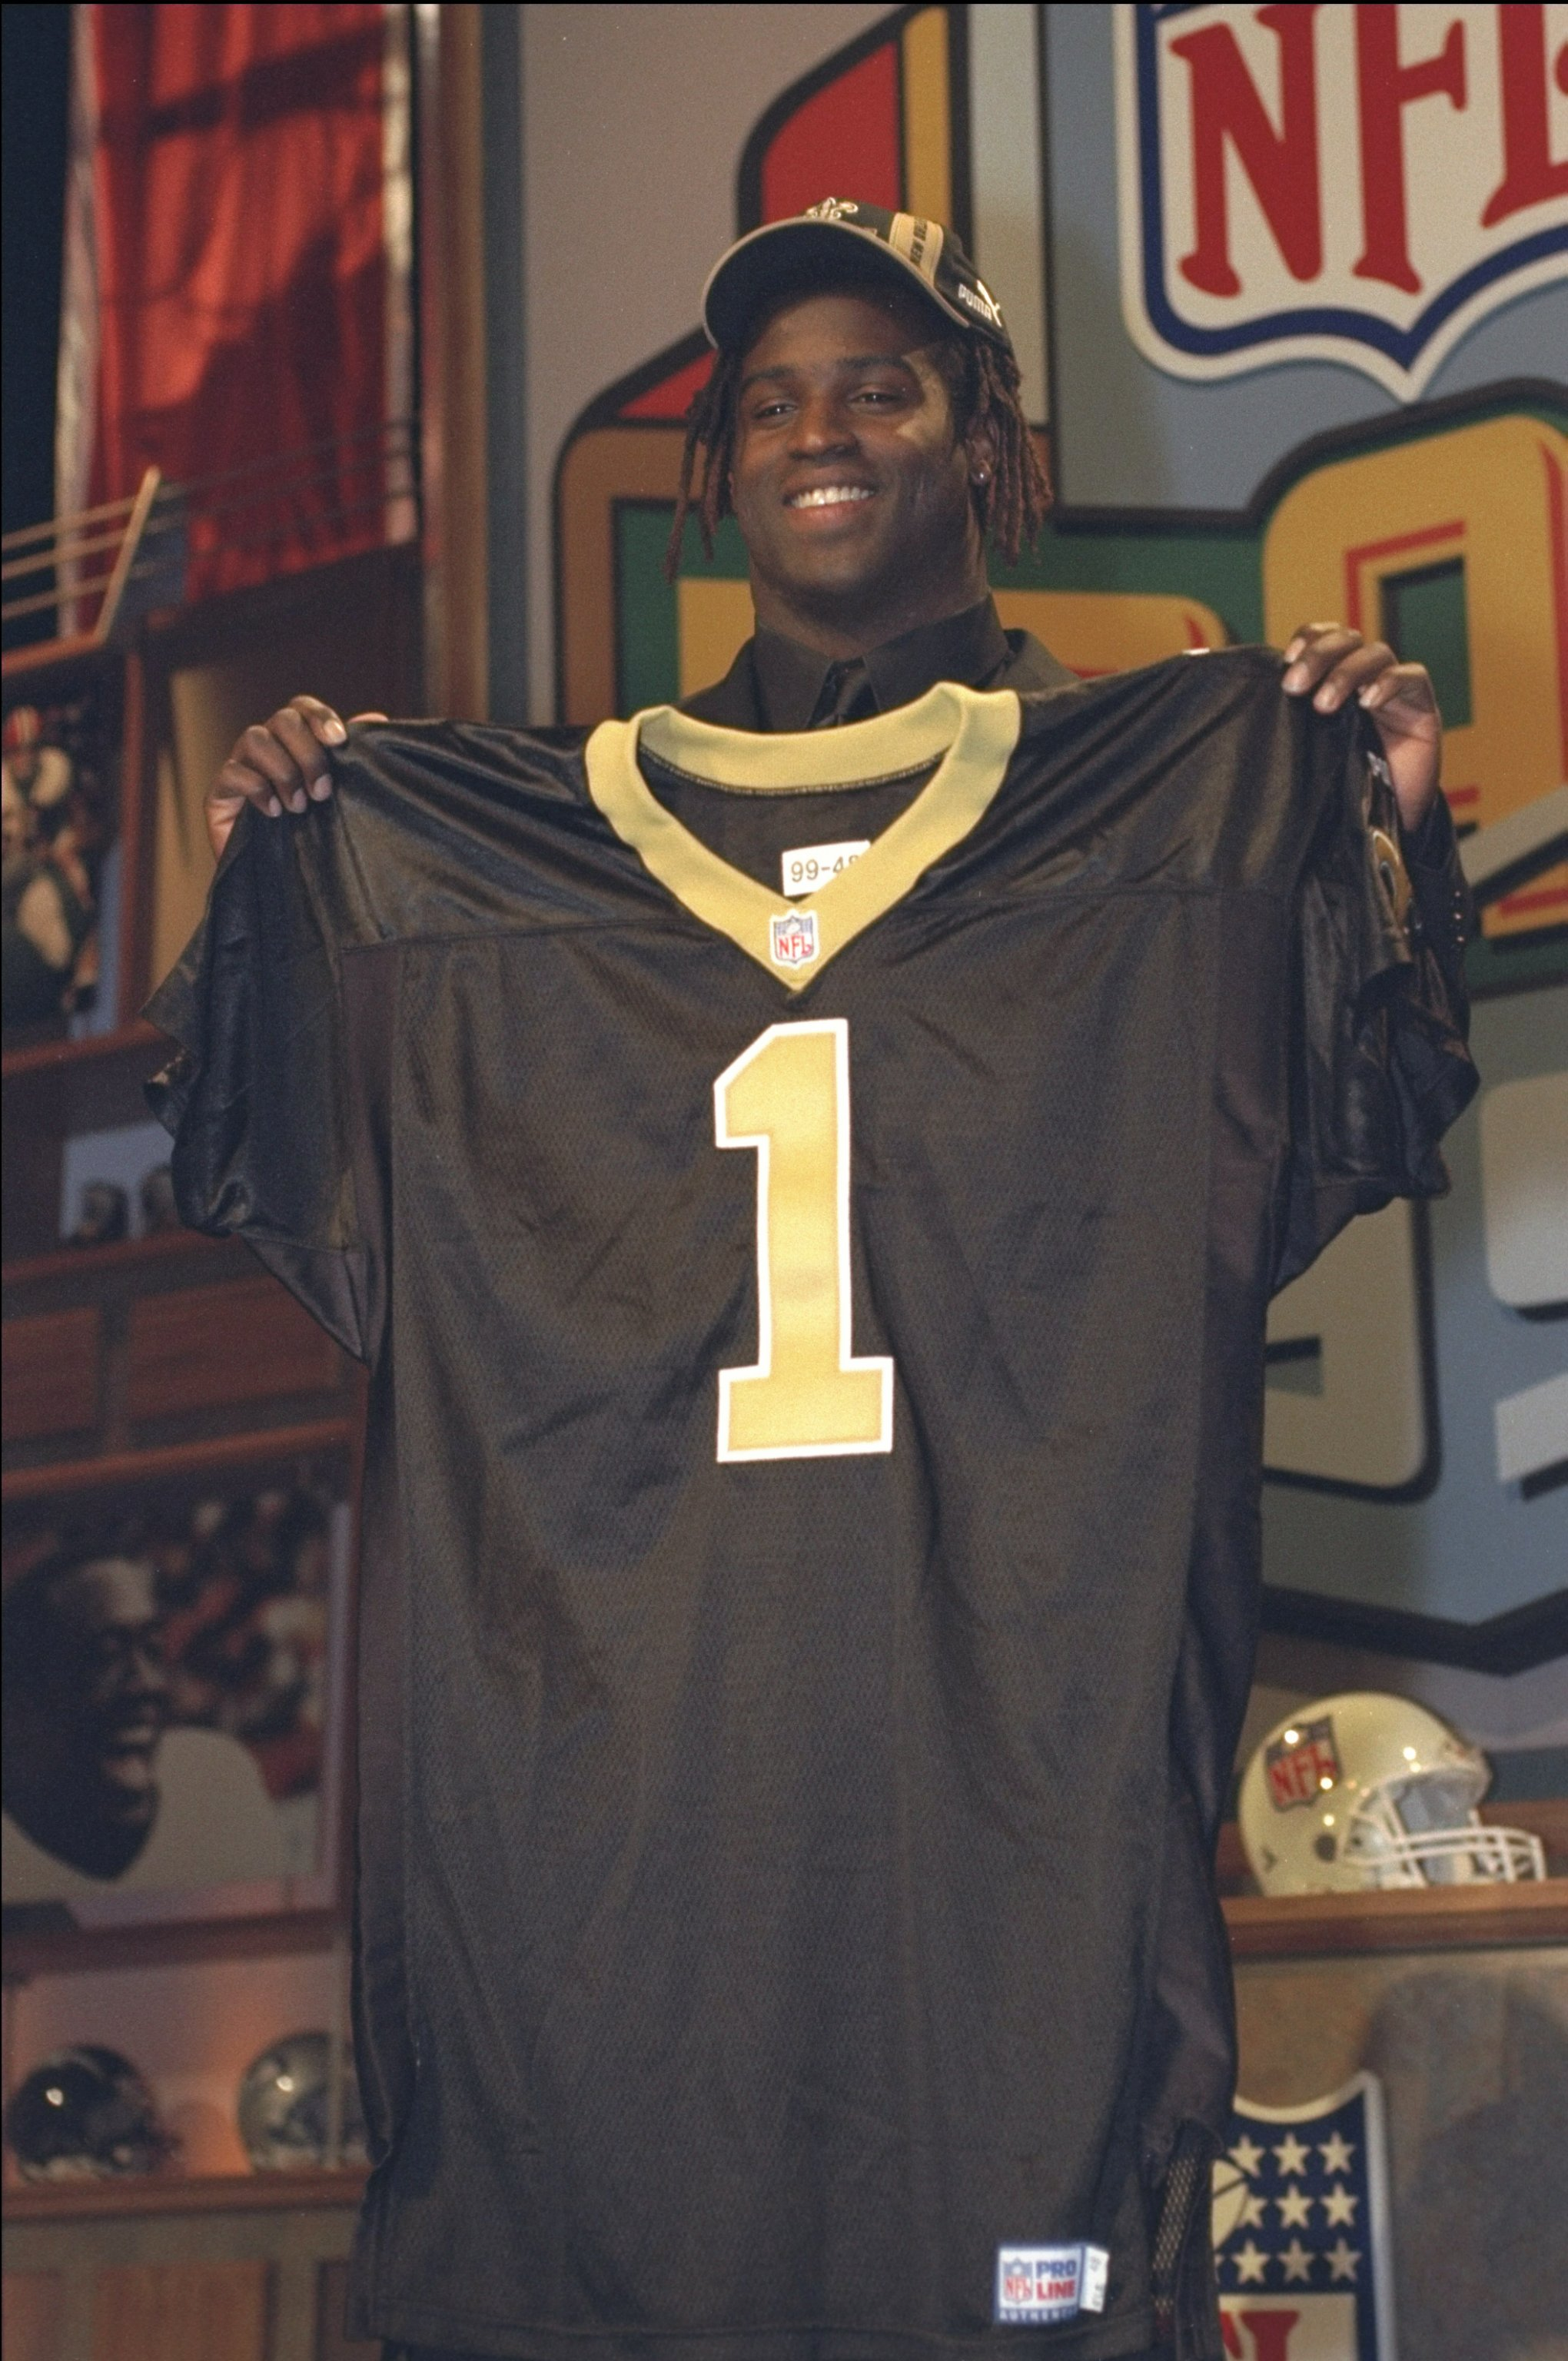 17 Apr 1999: The fifth draft pick Ricky Williams holds his new New Orleans Saints jersey during the NFL Draft at the Madison Square Garden in New York, New York.